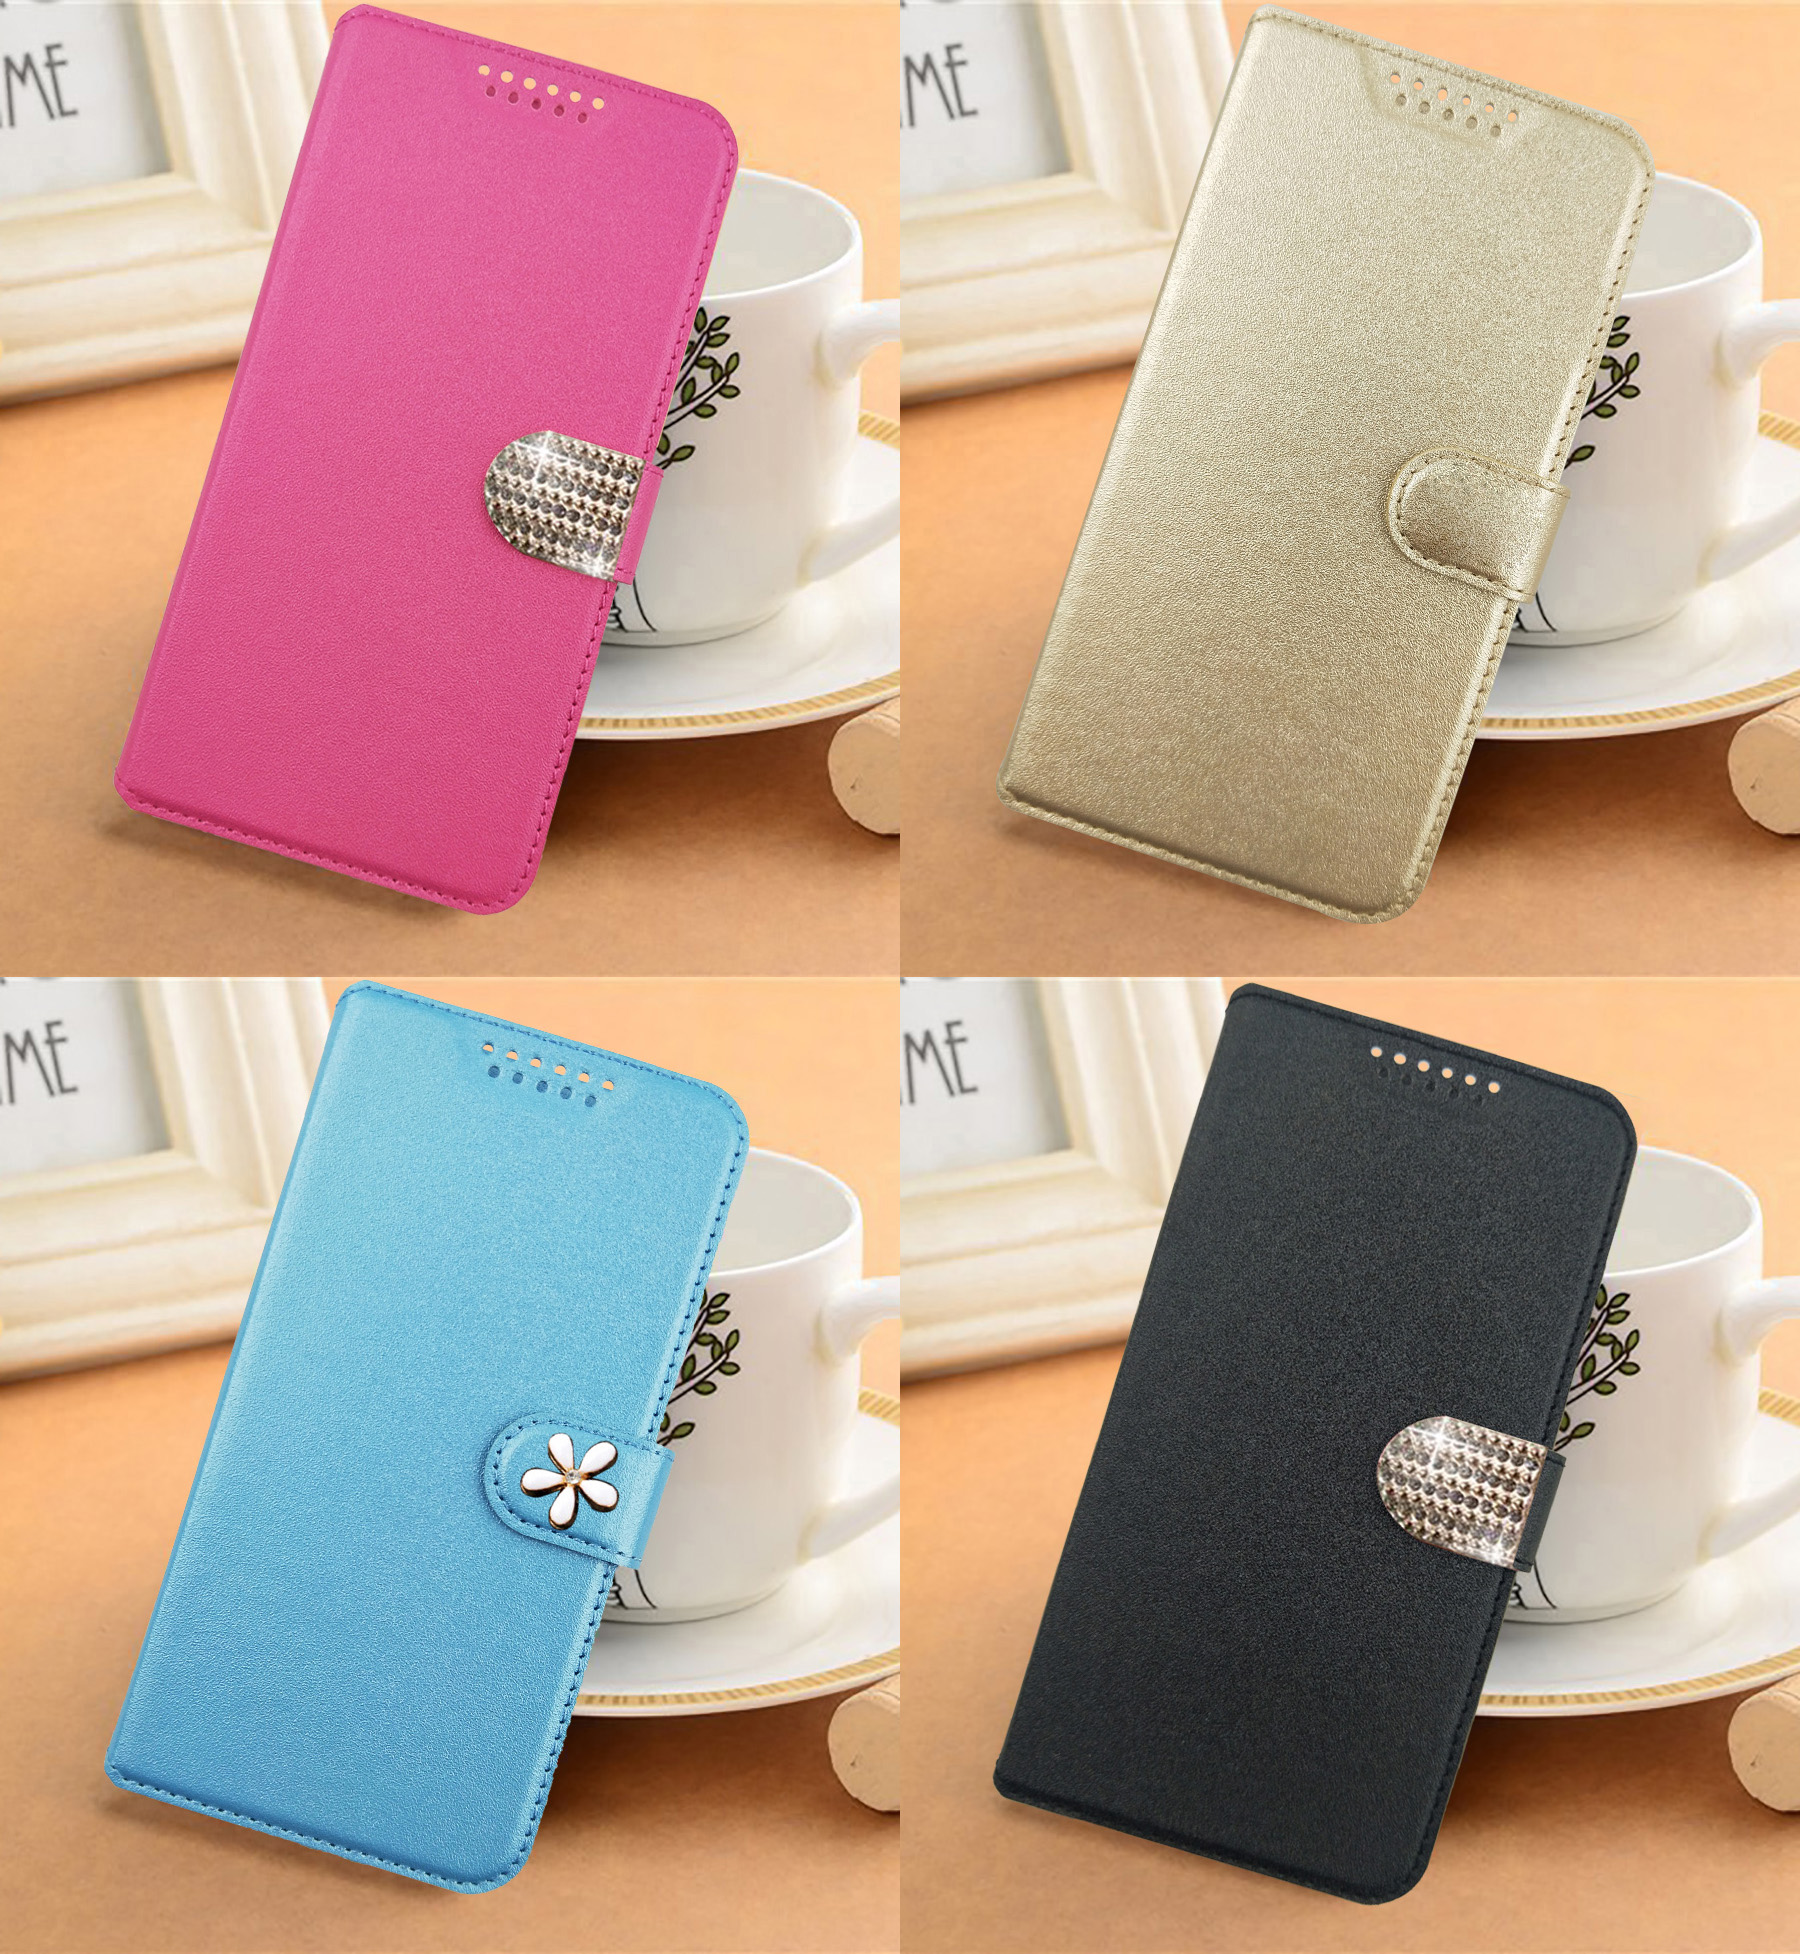 Newest Flip Case for Gome u9 C71 fenmmy note U7 MINI S7 K1 U7 S1 Printed Flower Butterfly Special PU Leather case